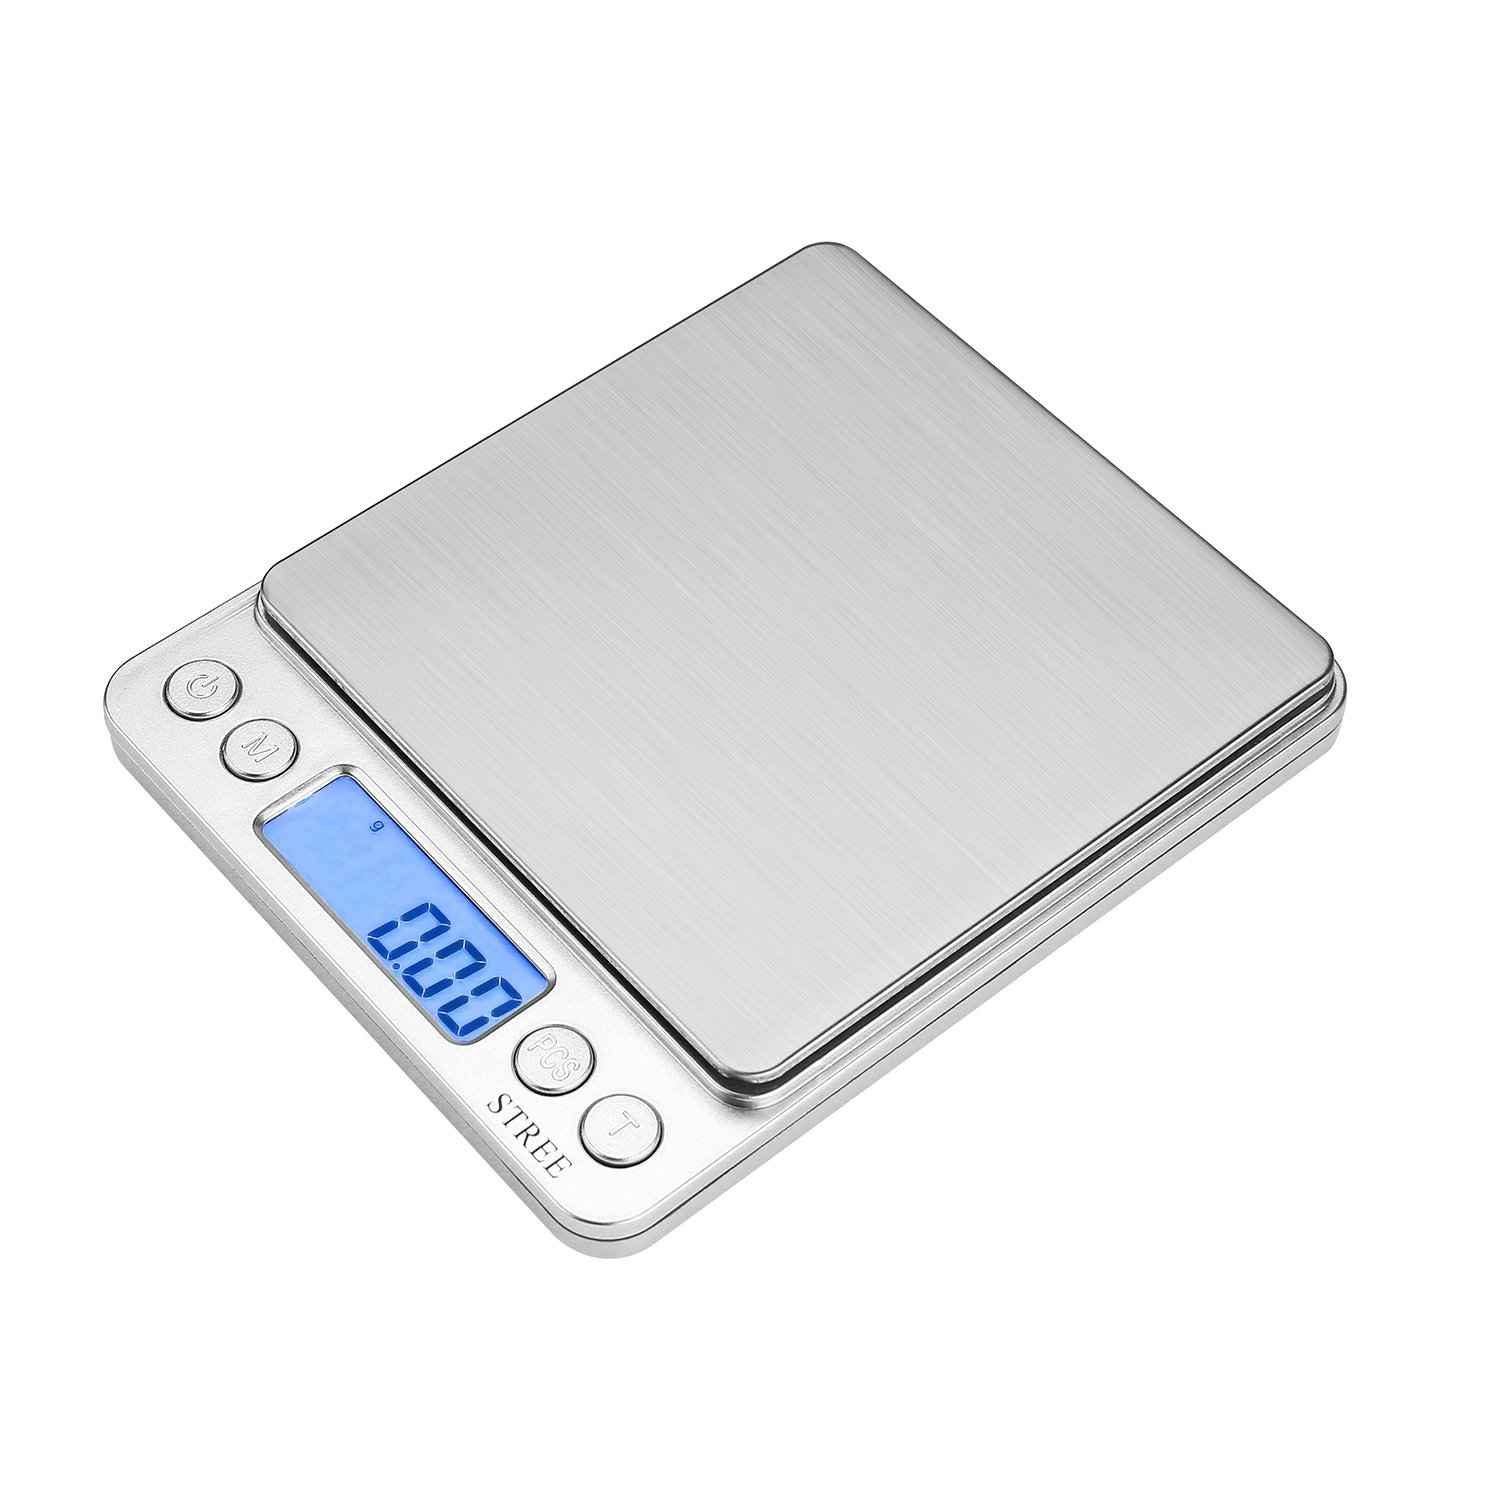 STree 500g/0.01g Digital Kitchen Scale High-precision Multifunction Pocket Food Scale